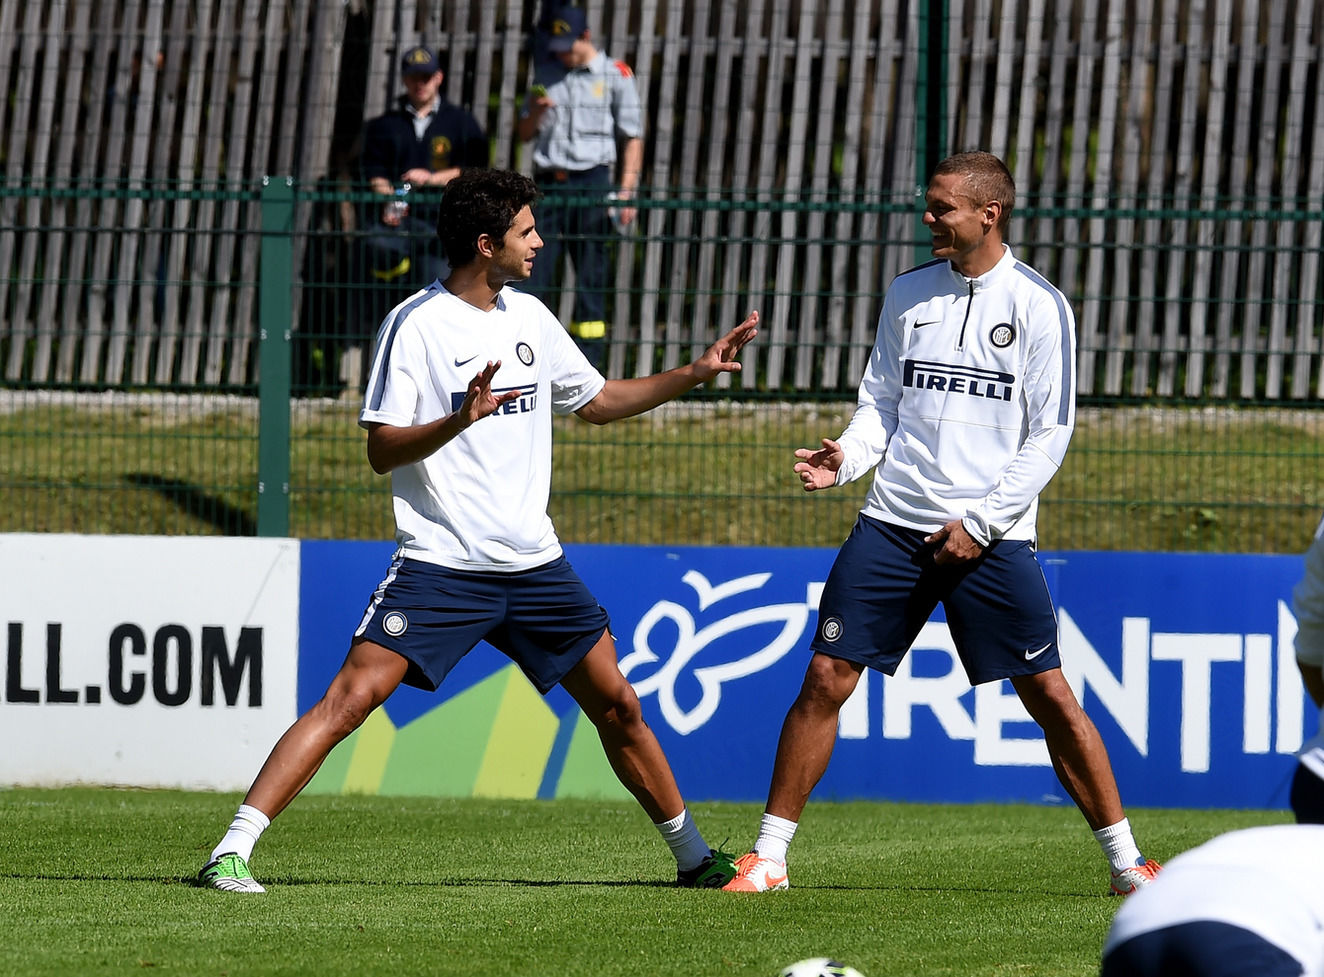 Morning workout in the Pinzolo sun for Inter